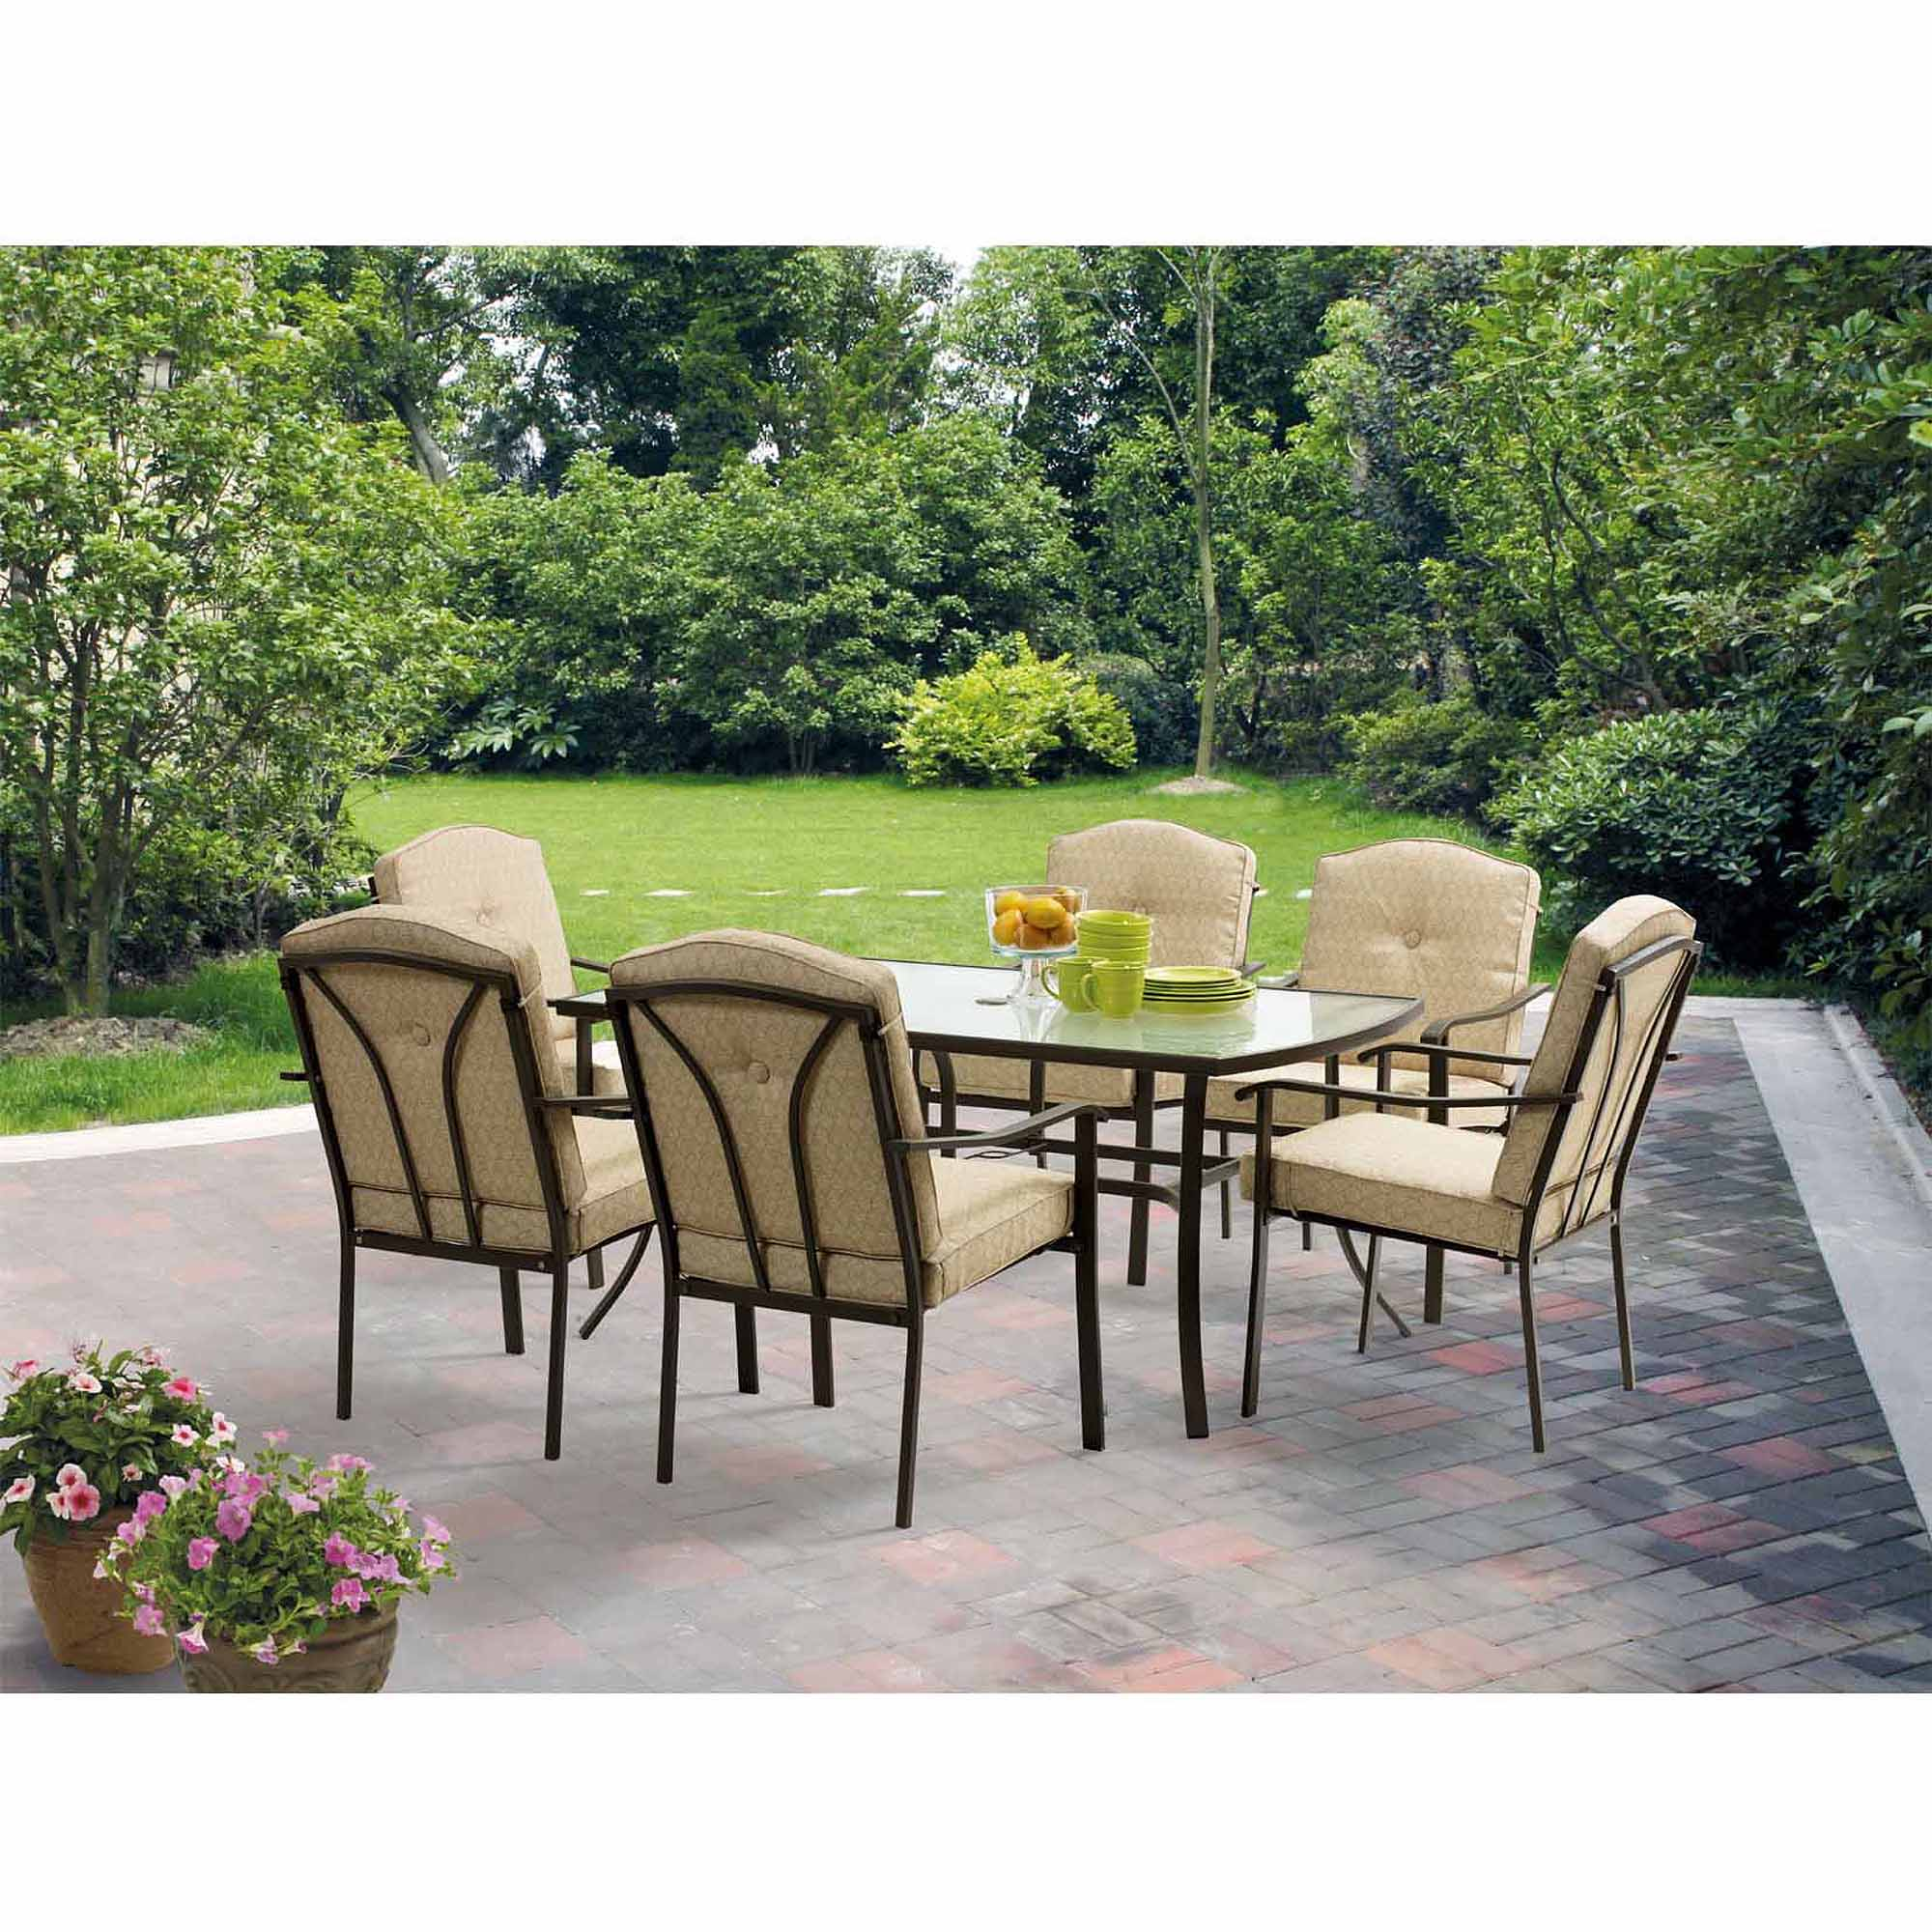 Mainstays Brookwood Landing 7 Piece Patio Dining Set Tan Box 2